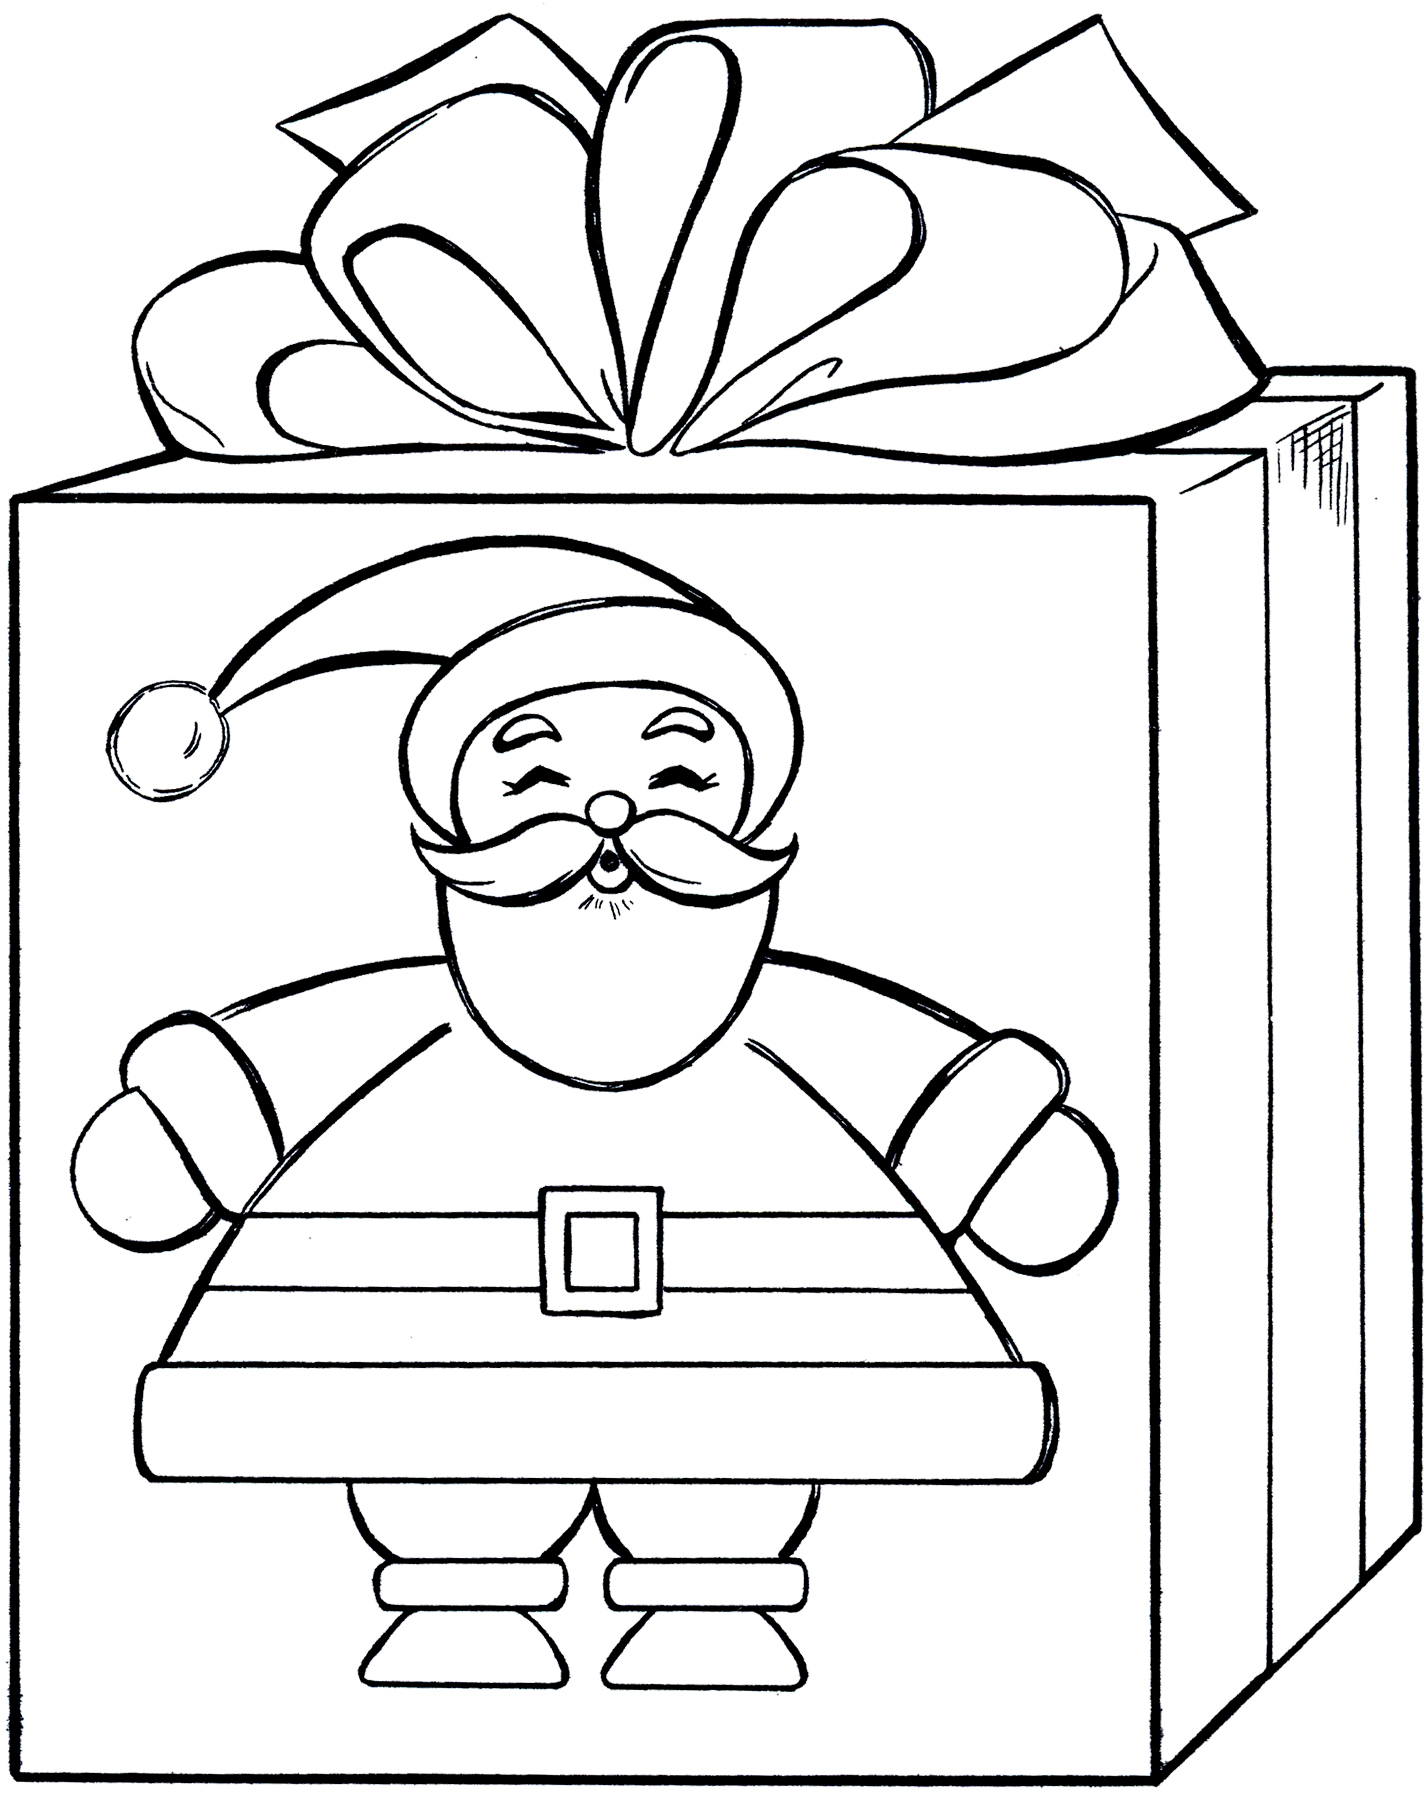 Santa gift coloring page cute the graphics fairy for Coloring pages of christmas presents